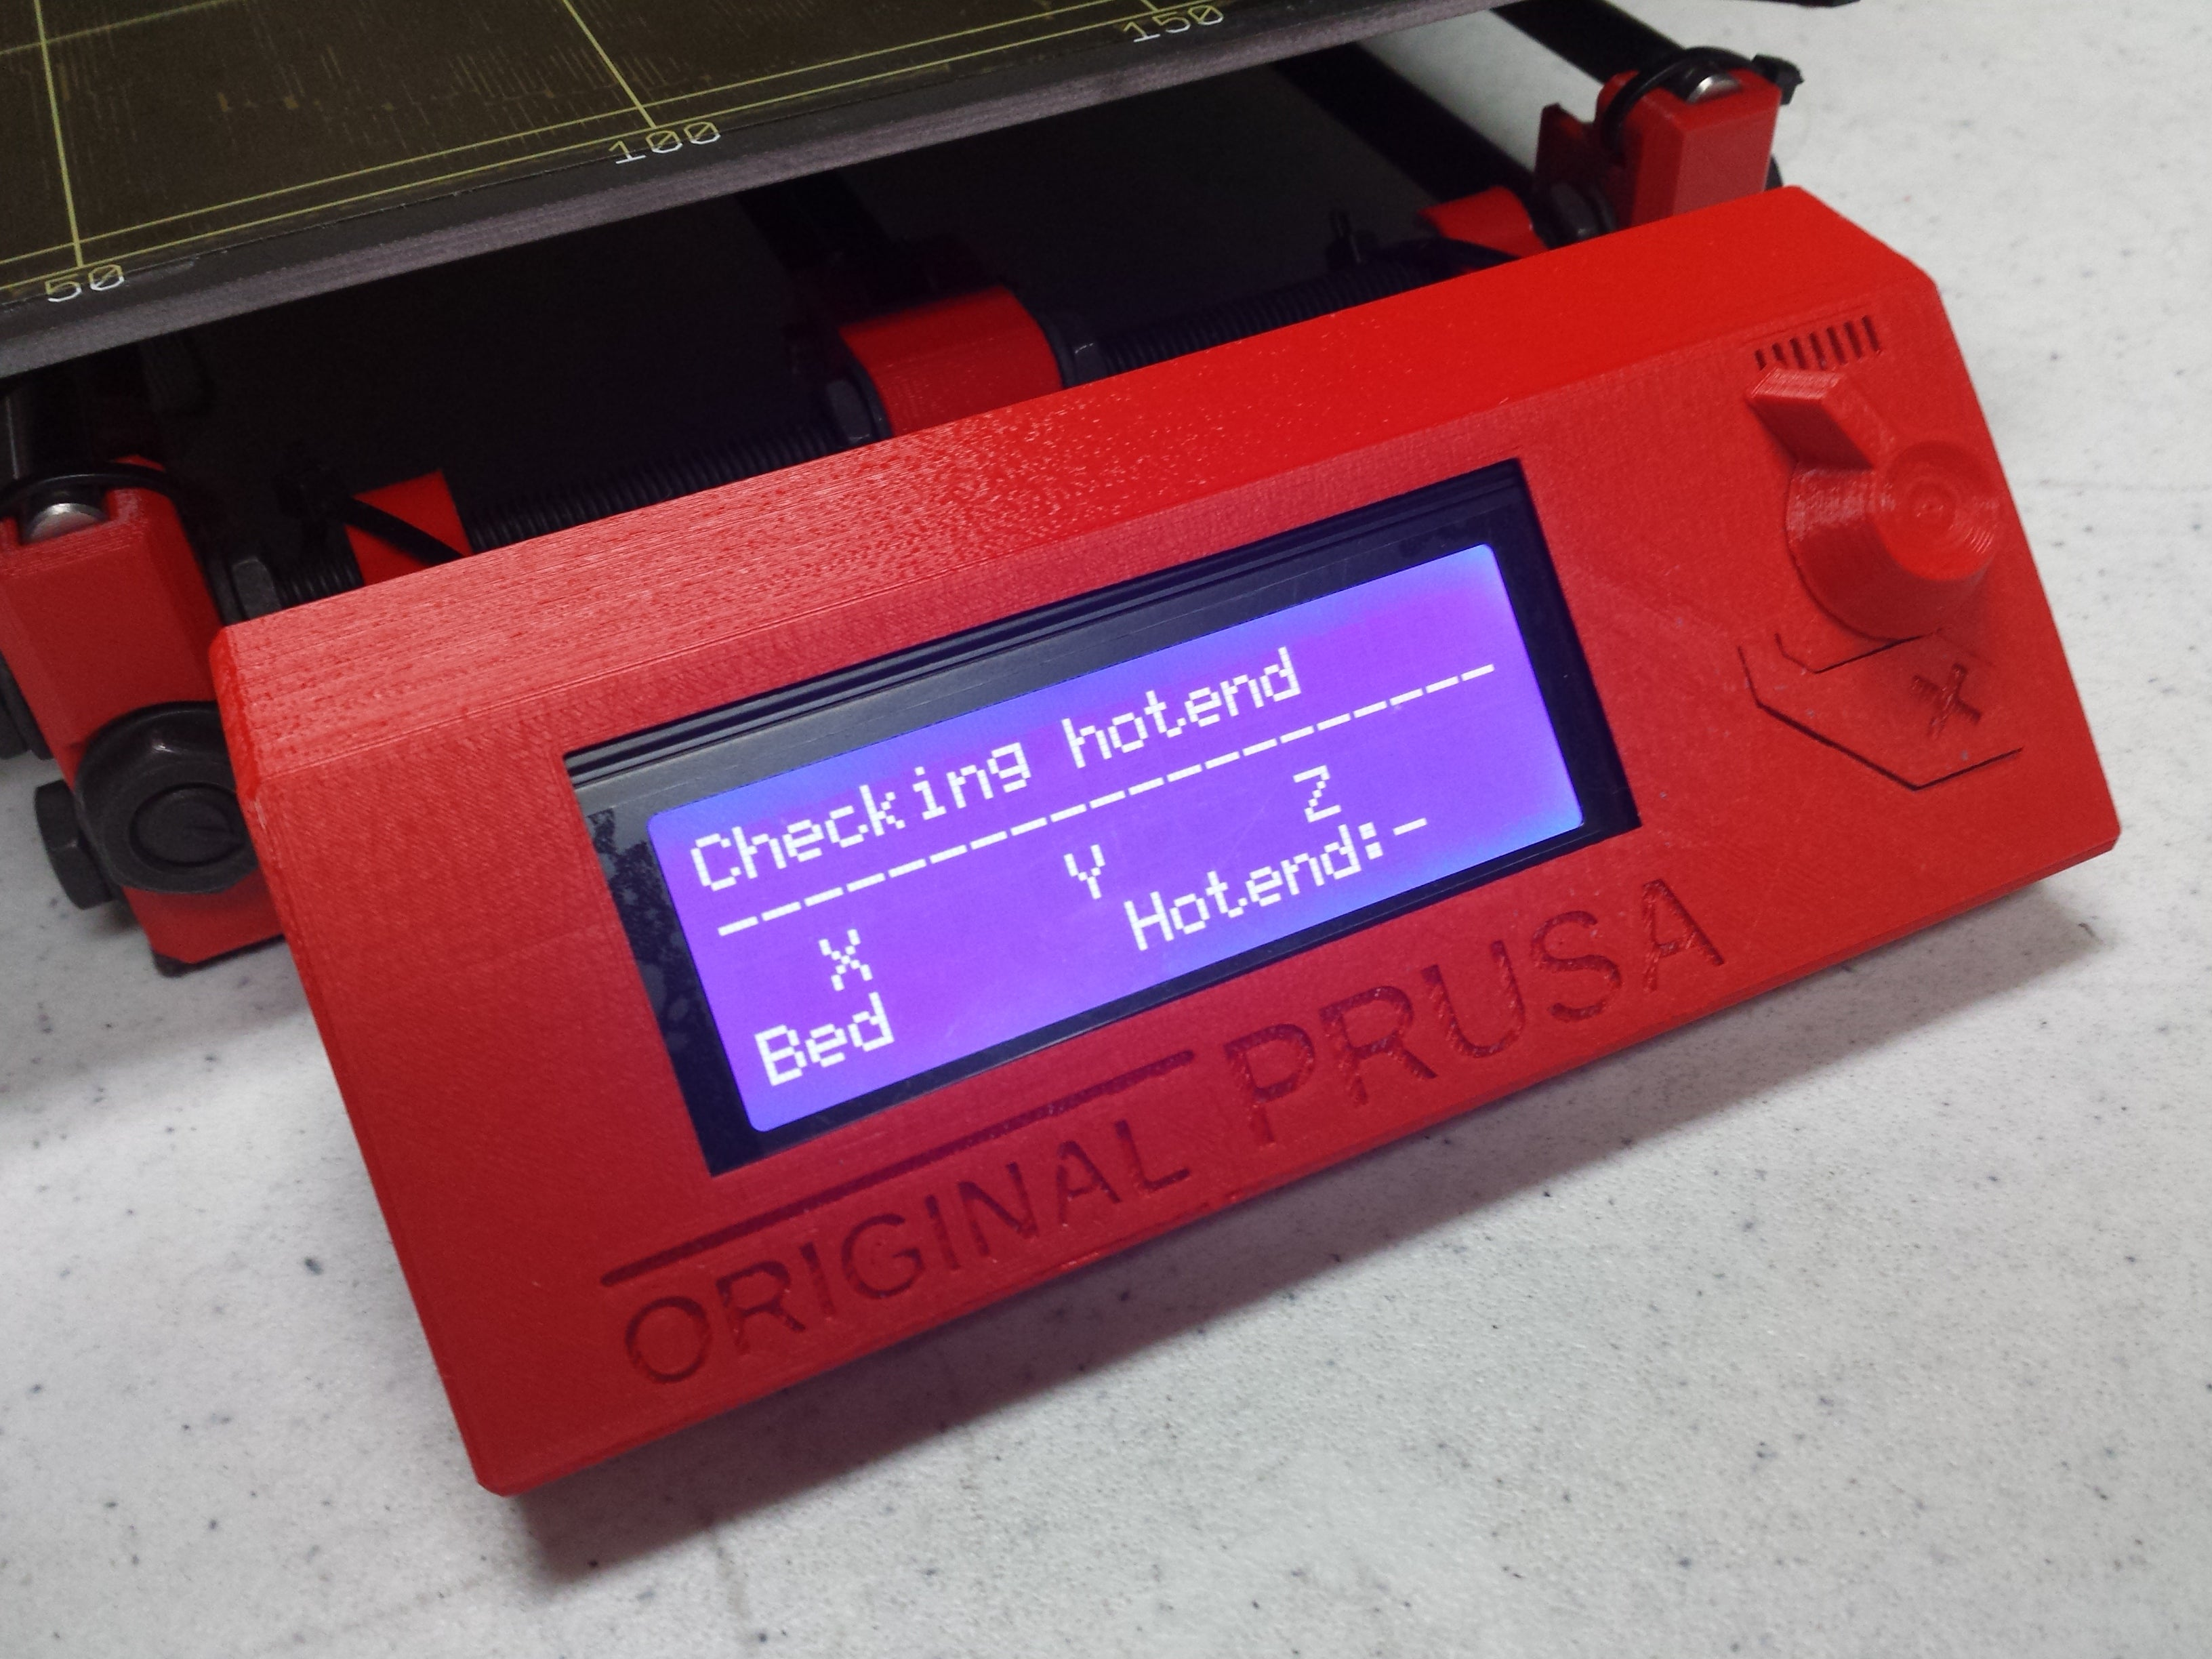 Picture of LCD controller screen of Prusa i3 MK2 3D printer